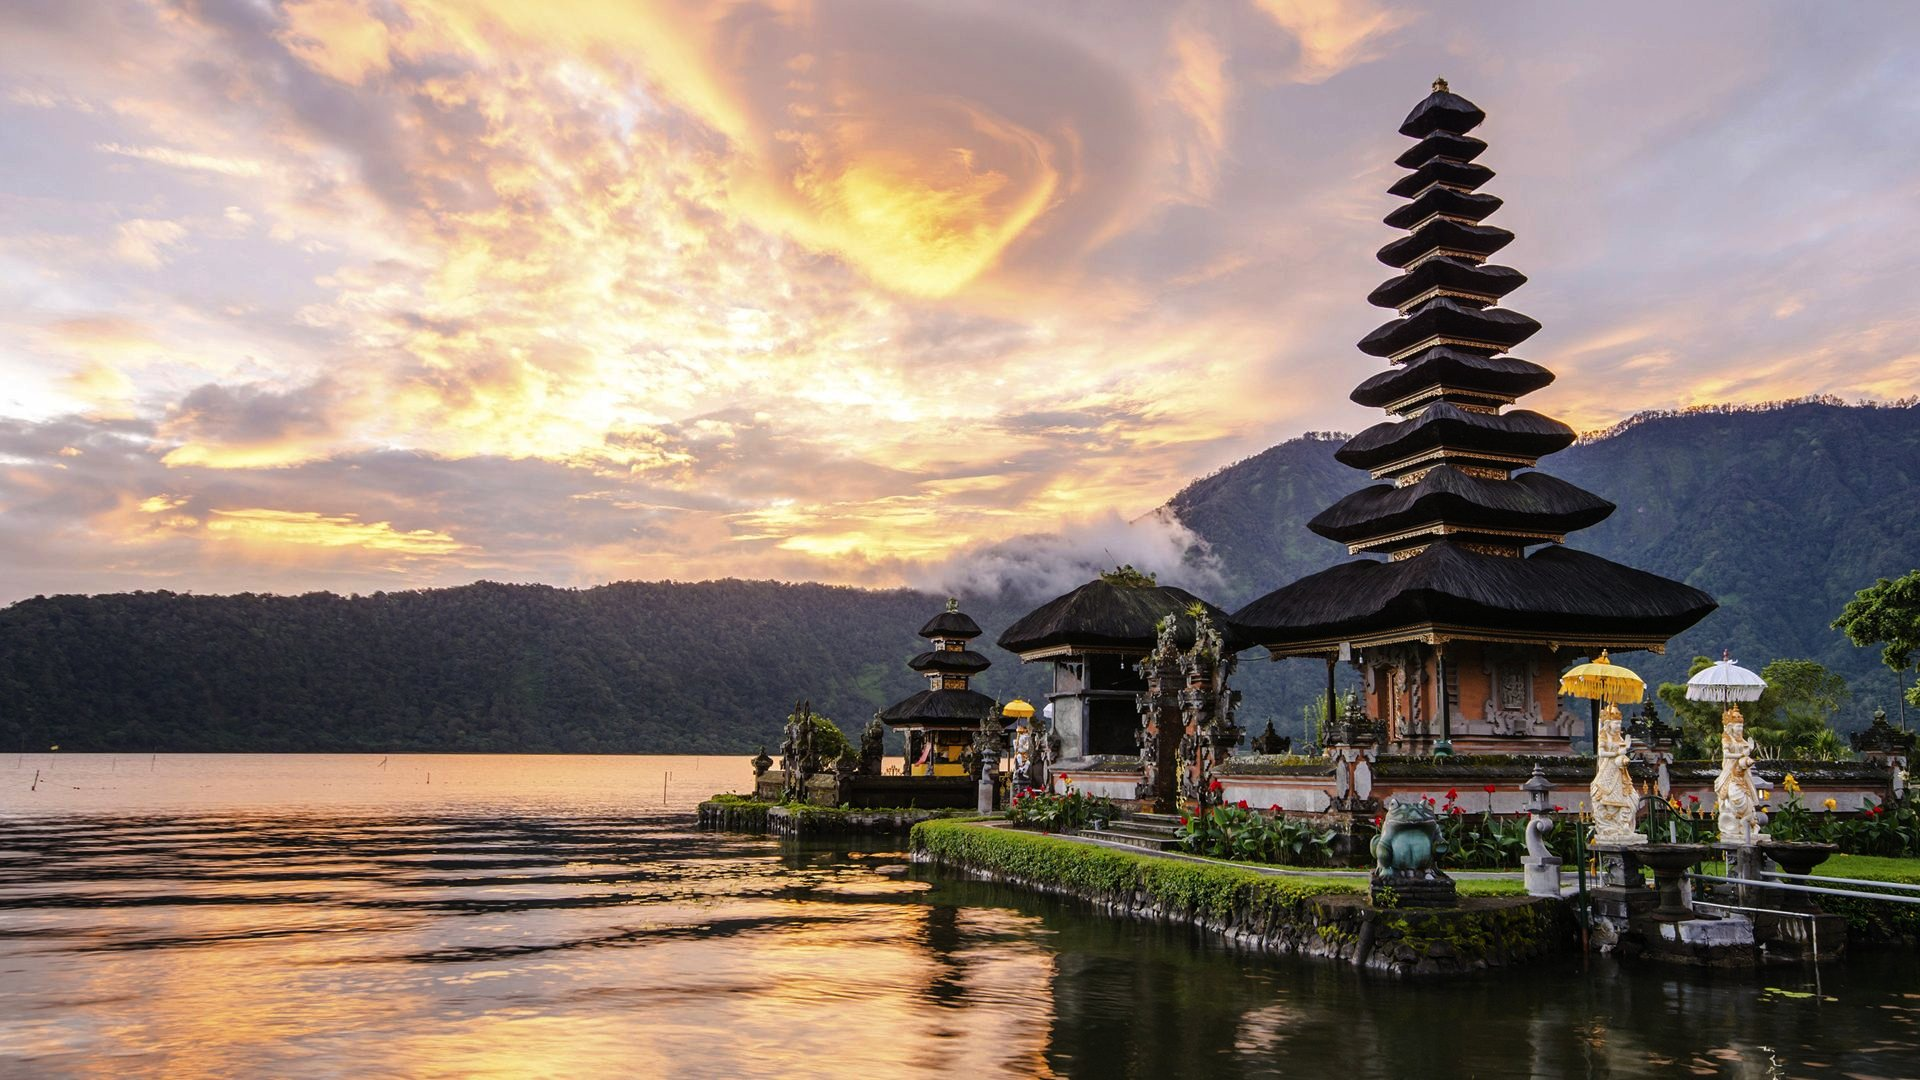 Bali - Paradise on Earth